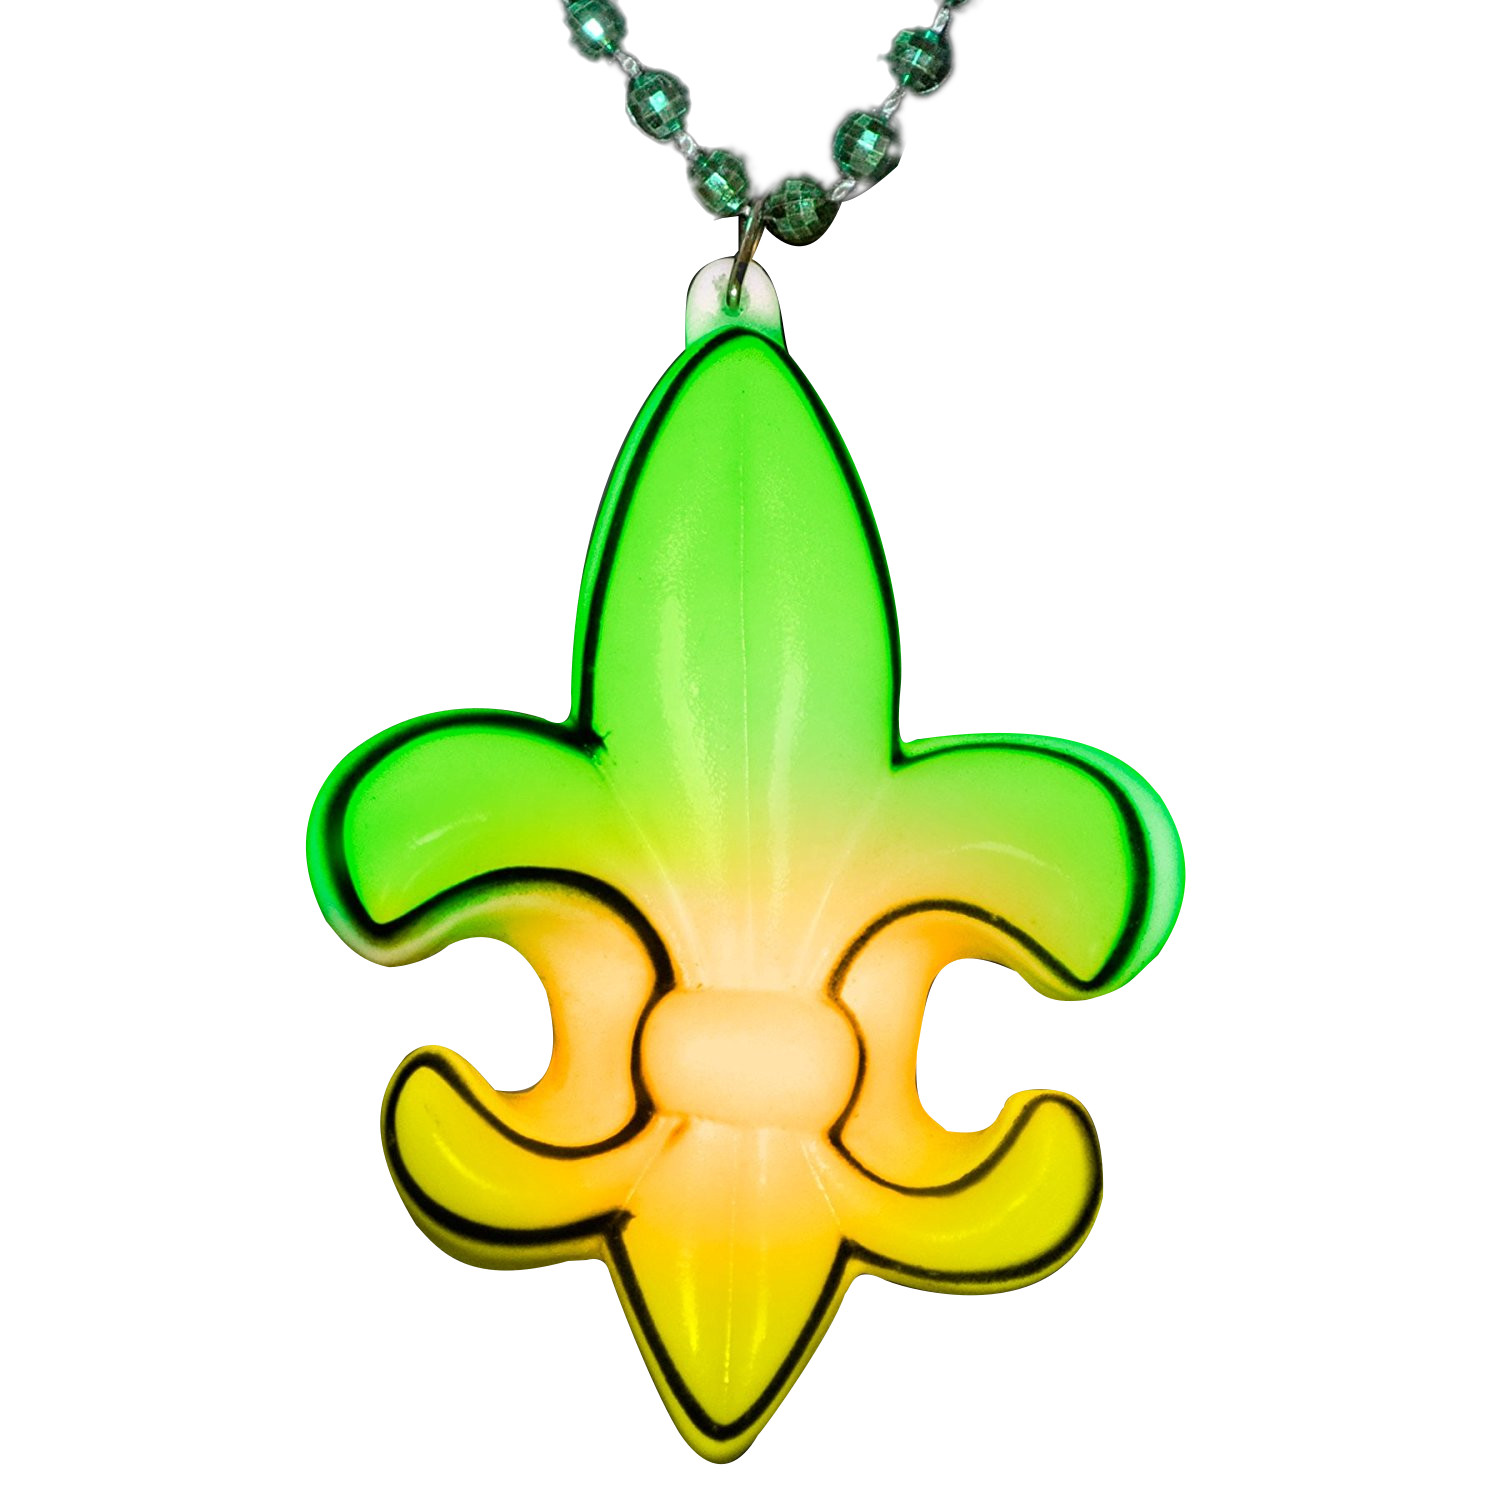 Fleur De Lis LED Charm on Mardi Gras Beads All Products